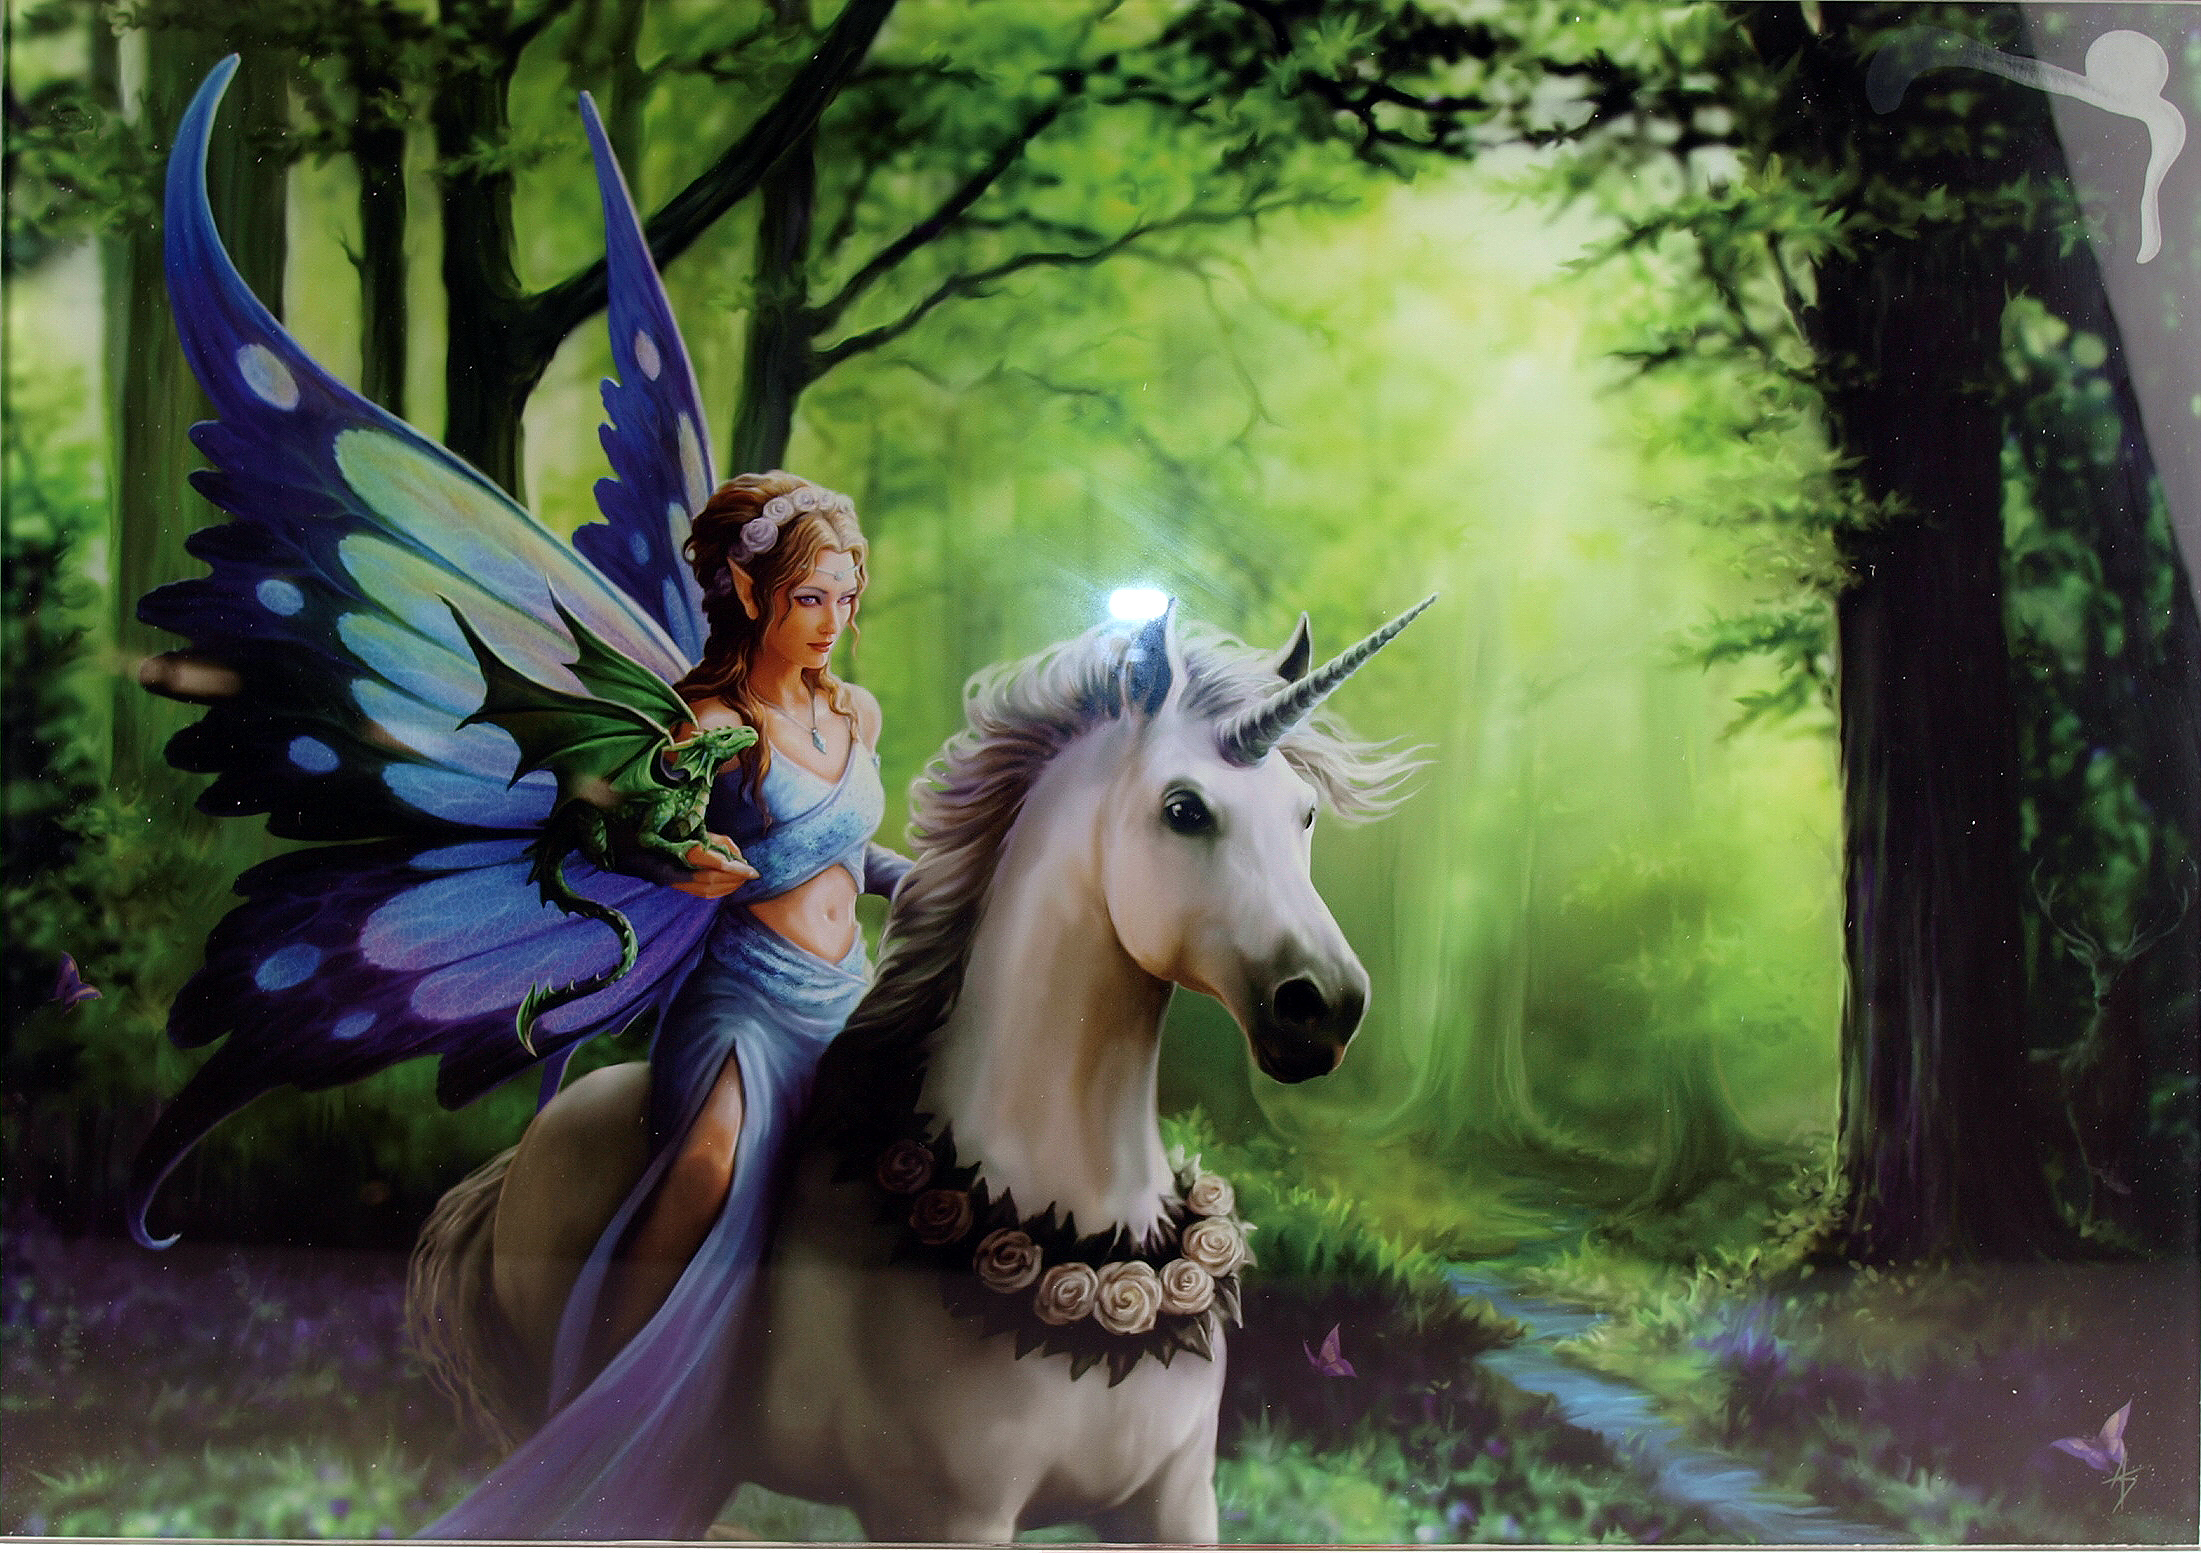 Details about Realm of Enchantment Fairy Unicorn Forest Glass Wall Art 50cm  Picture